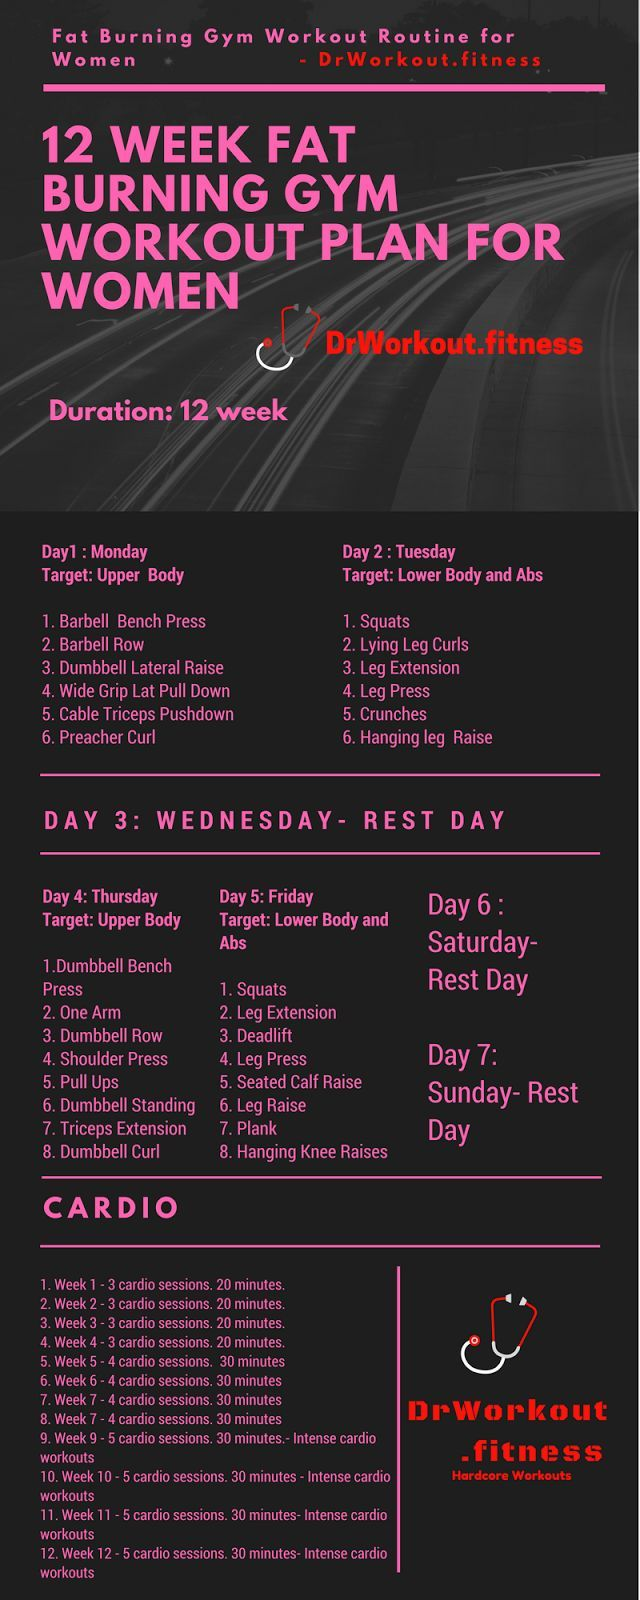 Diet plan to get 6 pack abs photo 3